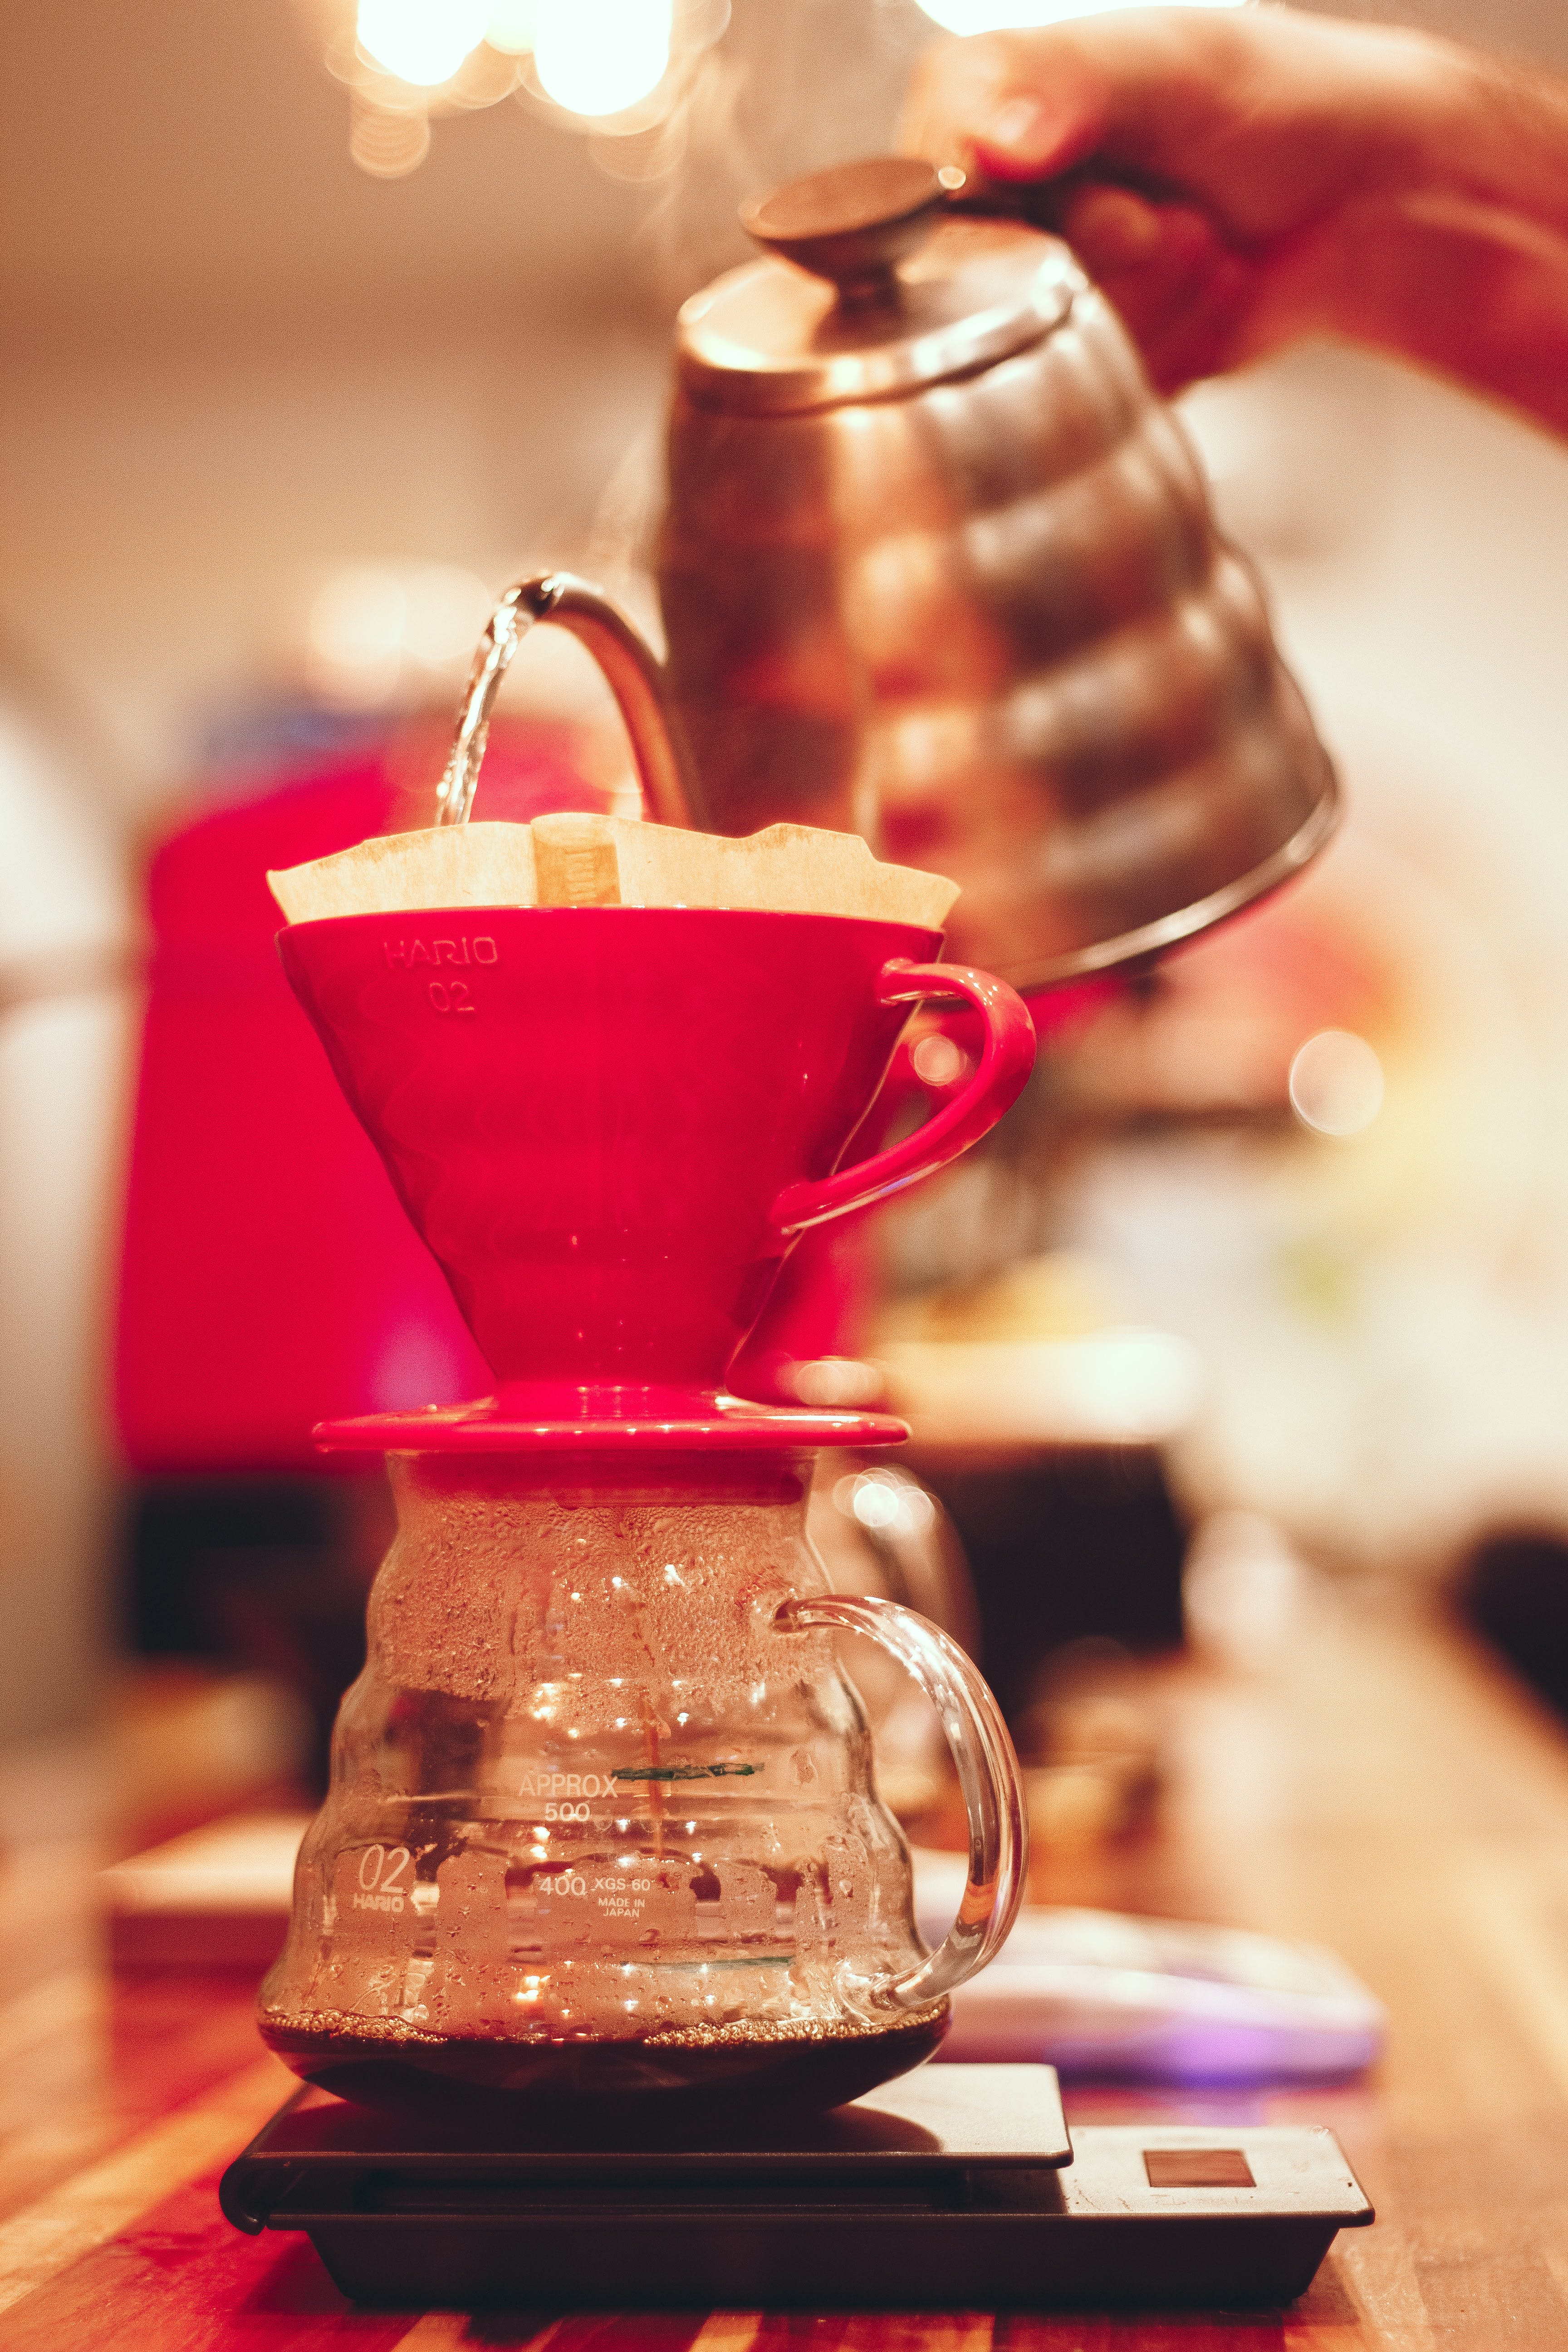 Selective Focus Photography of Coffee Maker